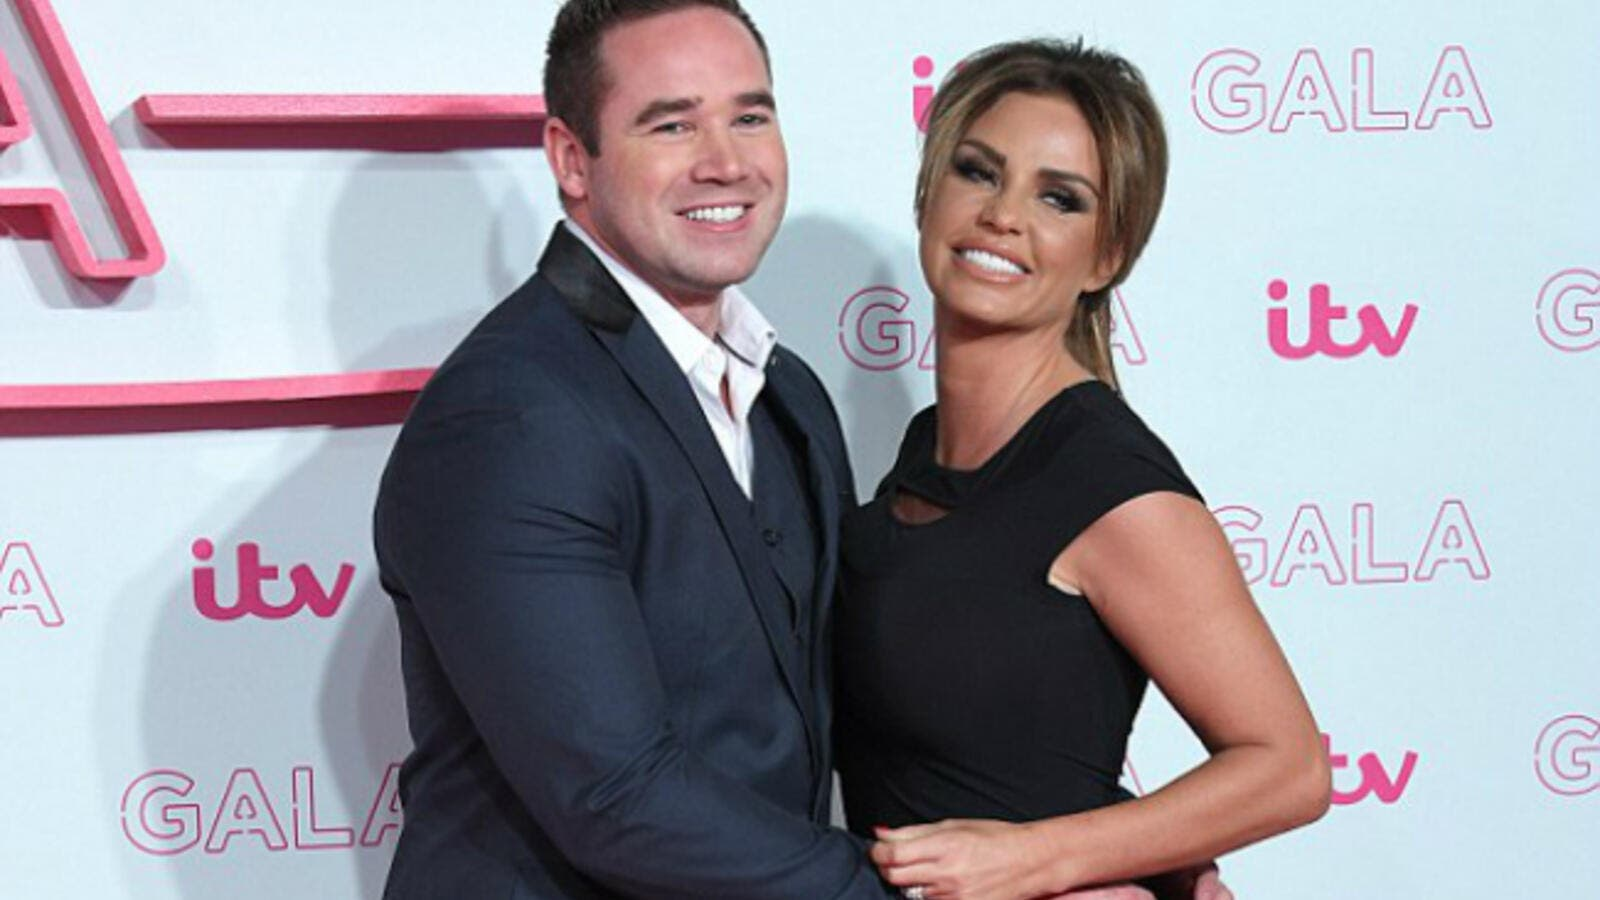 Katie Price Pulls the Plug on Her Marriage With Former